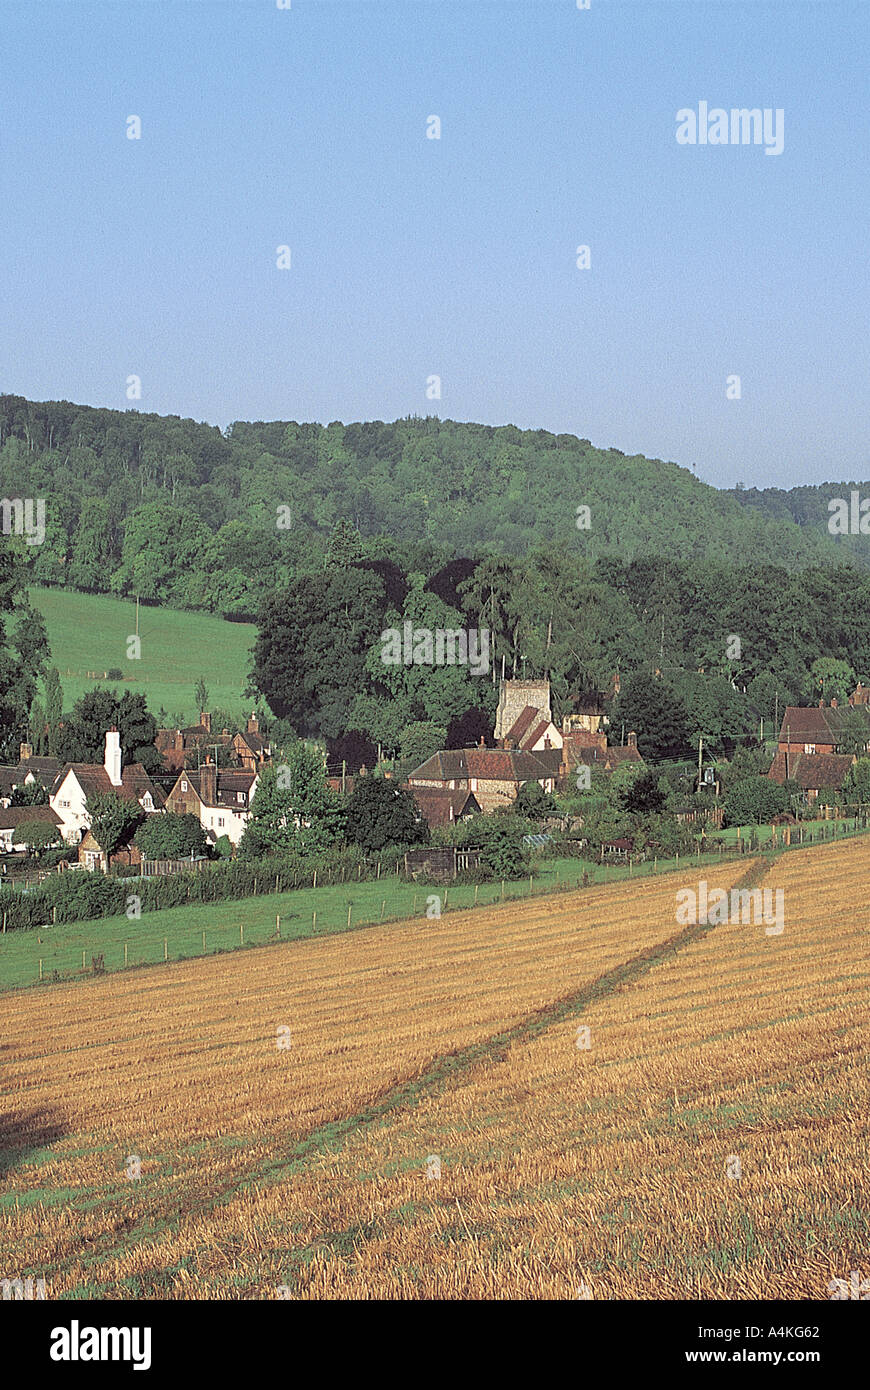 Turville village in the Chilterns - Stock Image